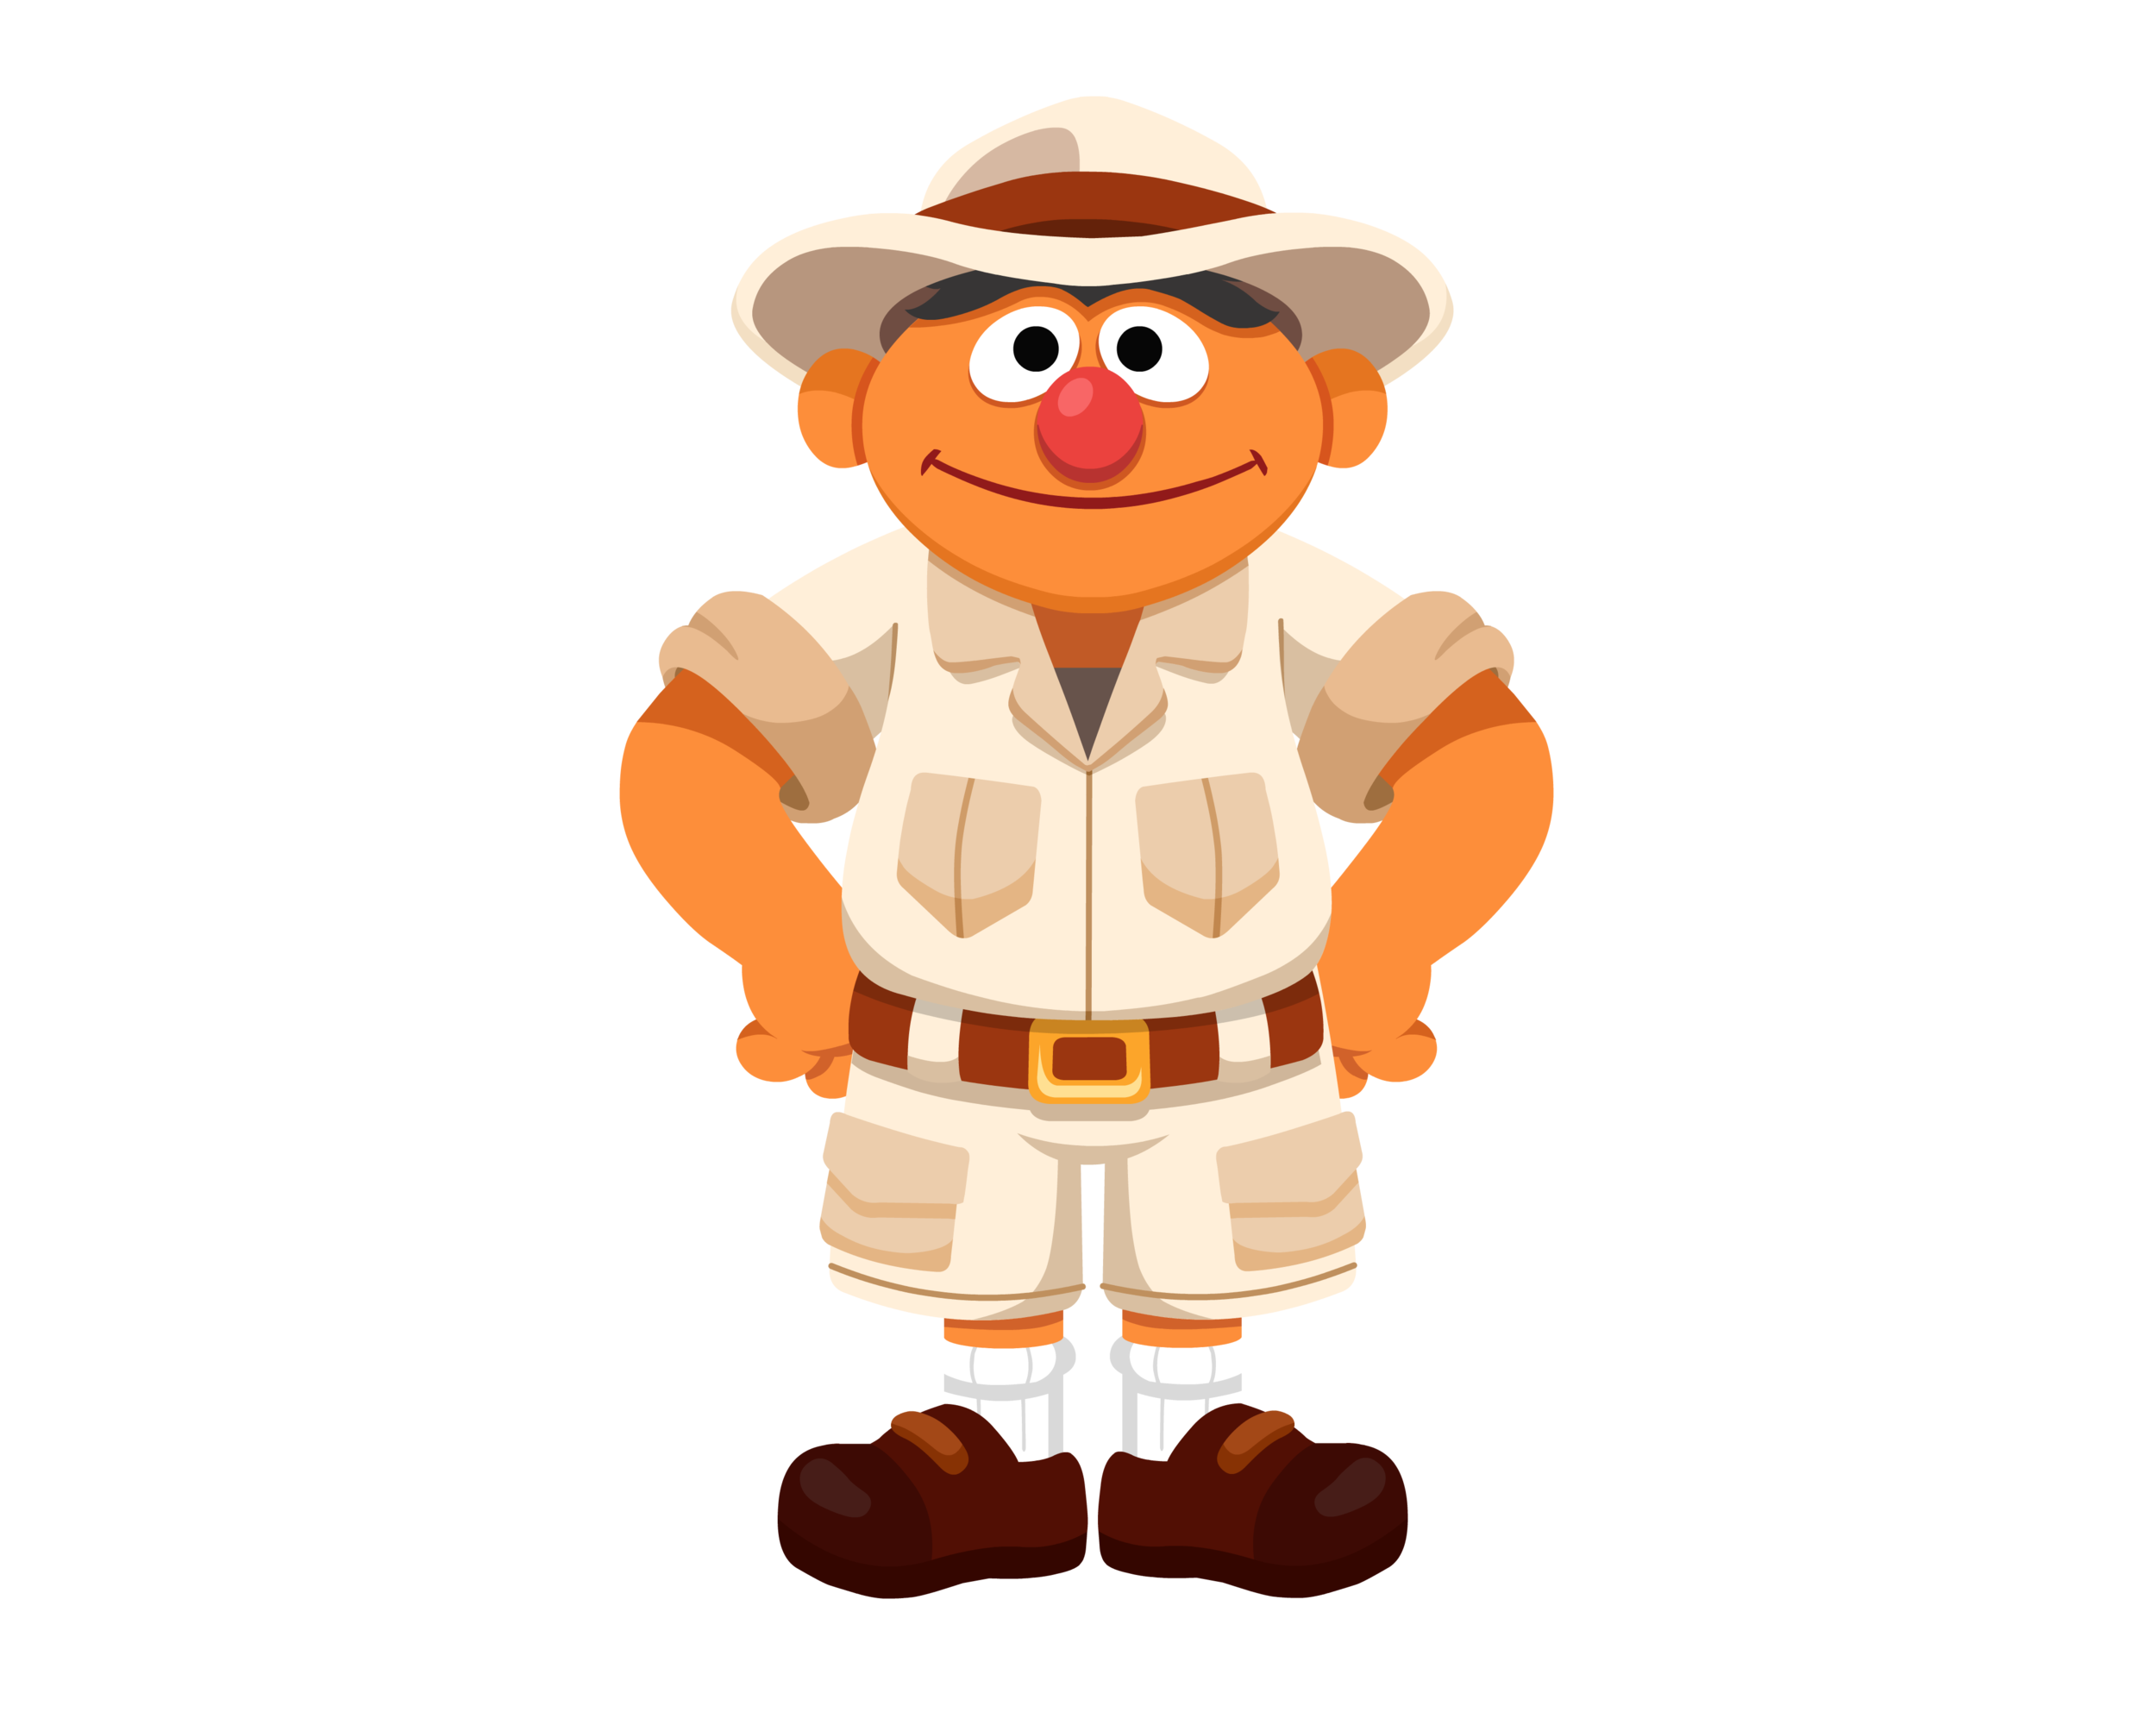 Character design and costume for Sesame Street web game